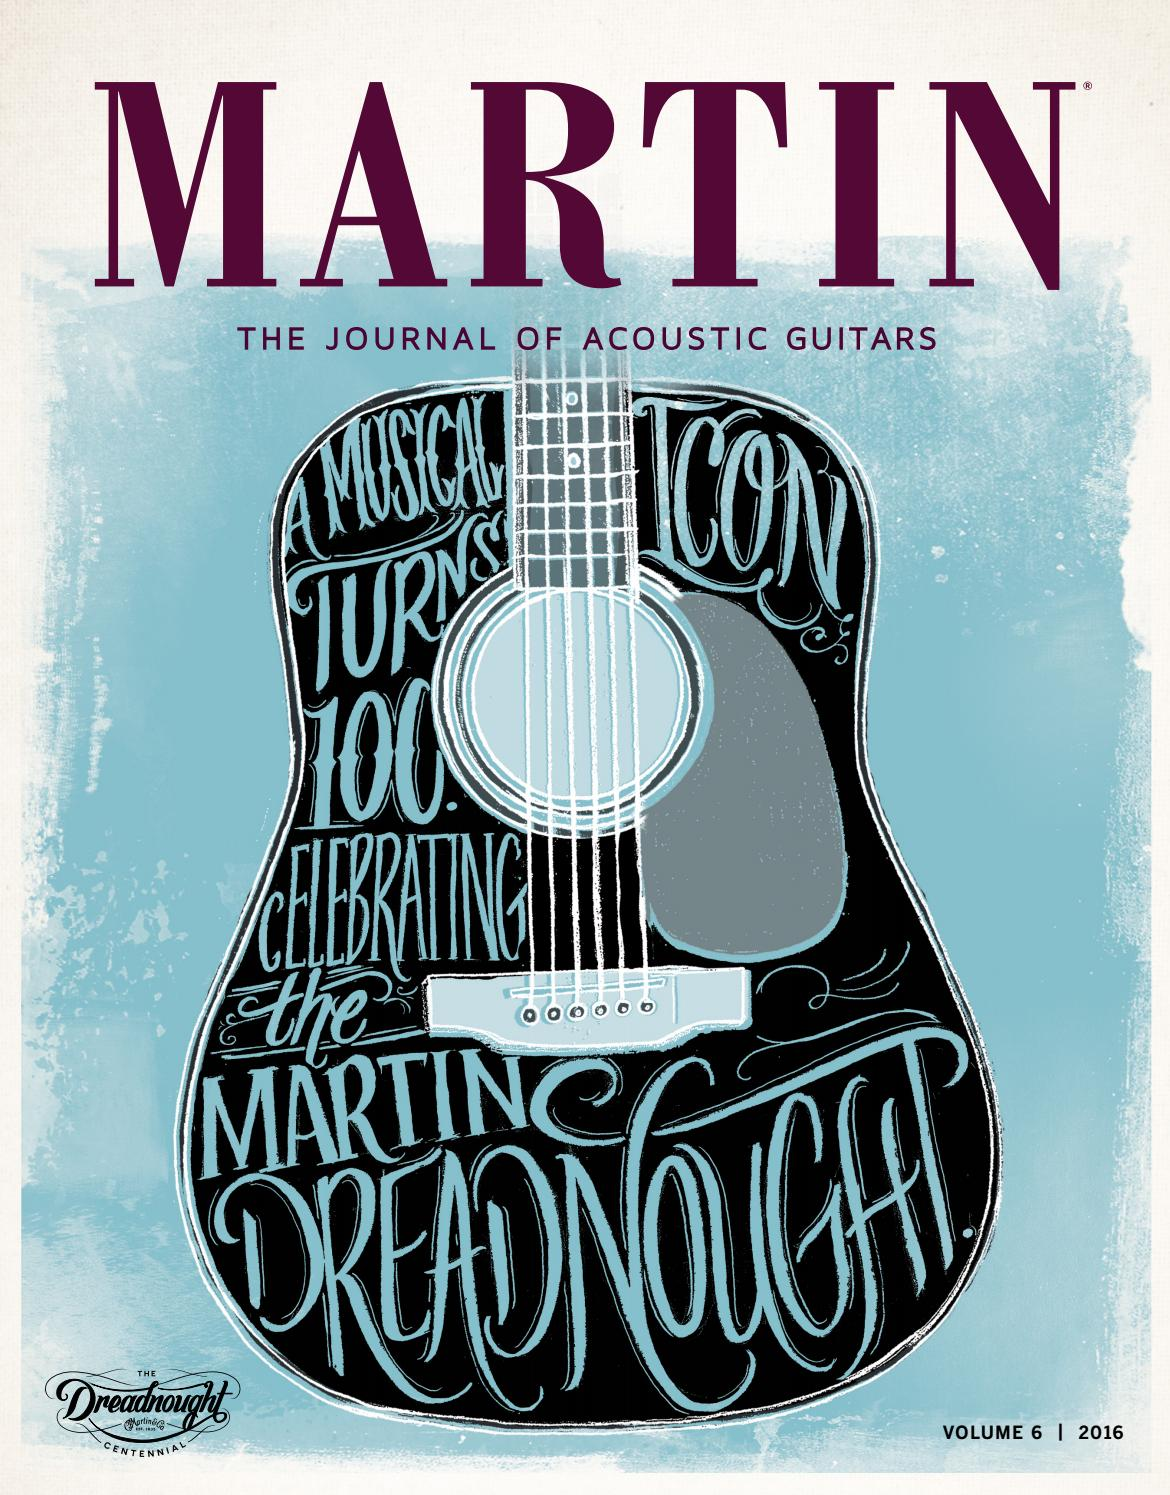 Martin Journal Of Acoustic Guitars Volume 6 By Martin Guitar Issuu